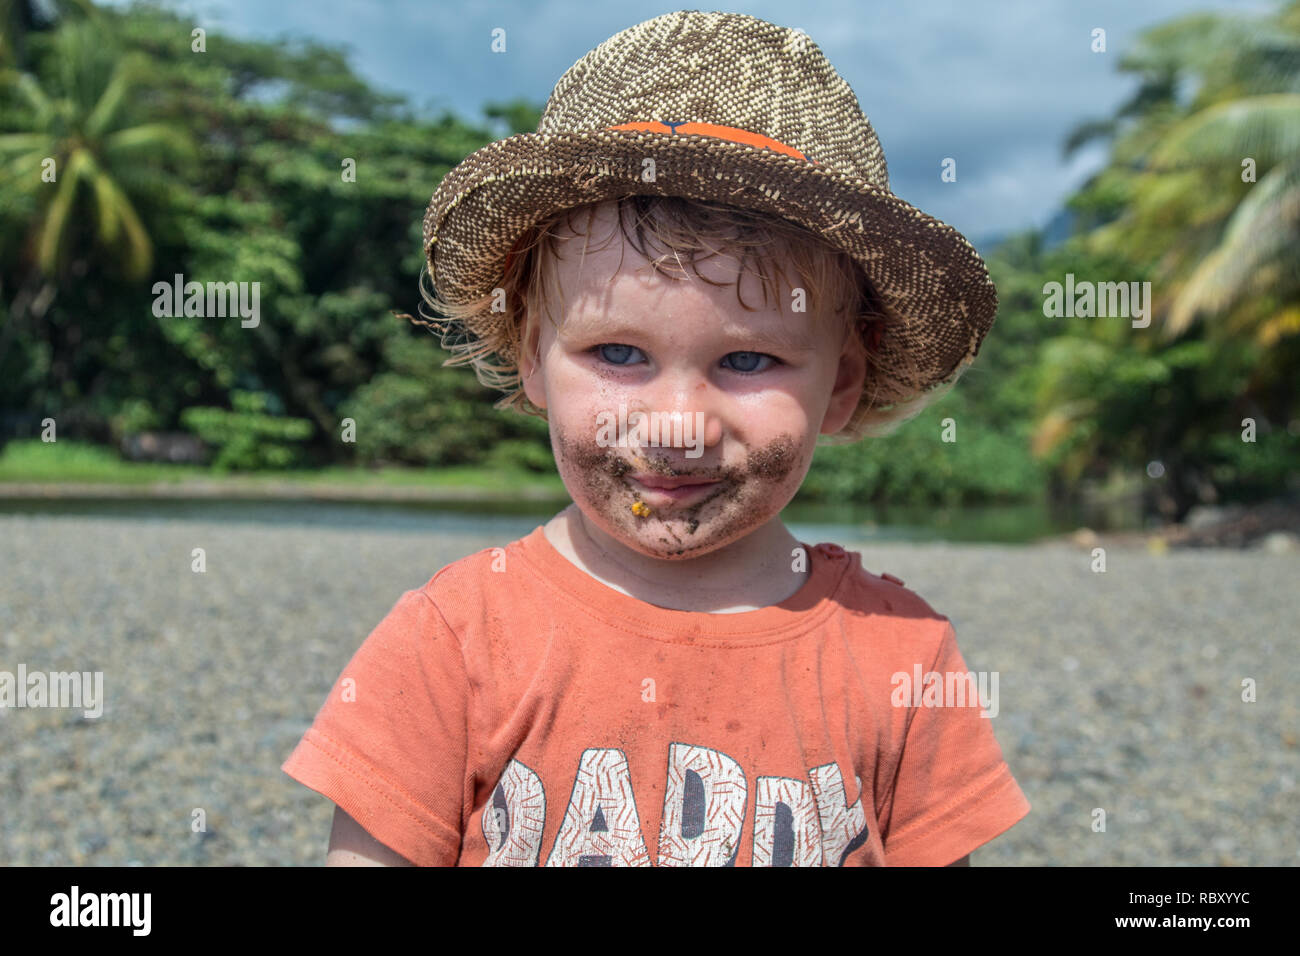 A nice portrait of an adorable toddler who has eaten sand. Mouth is dirty. Jaco Beach, Costa Rica. - Stock Image